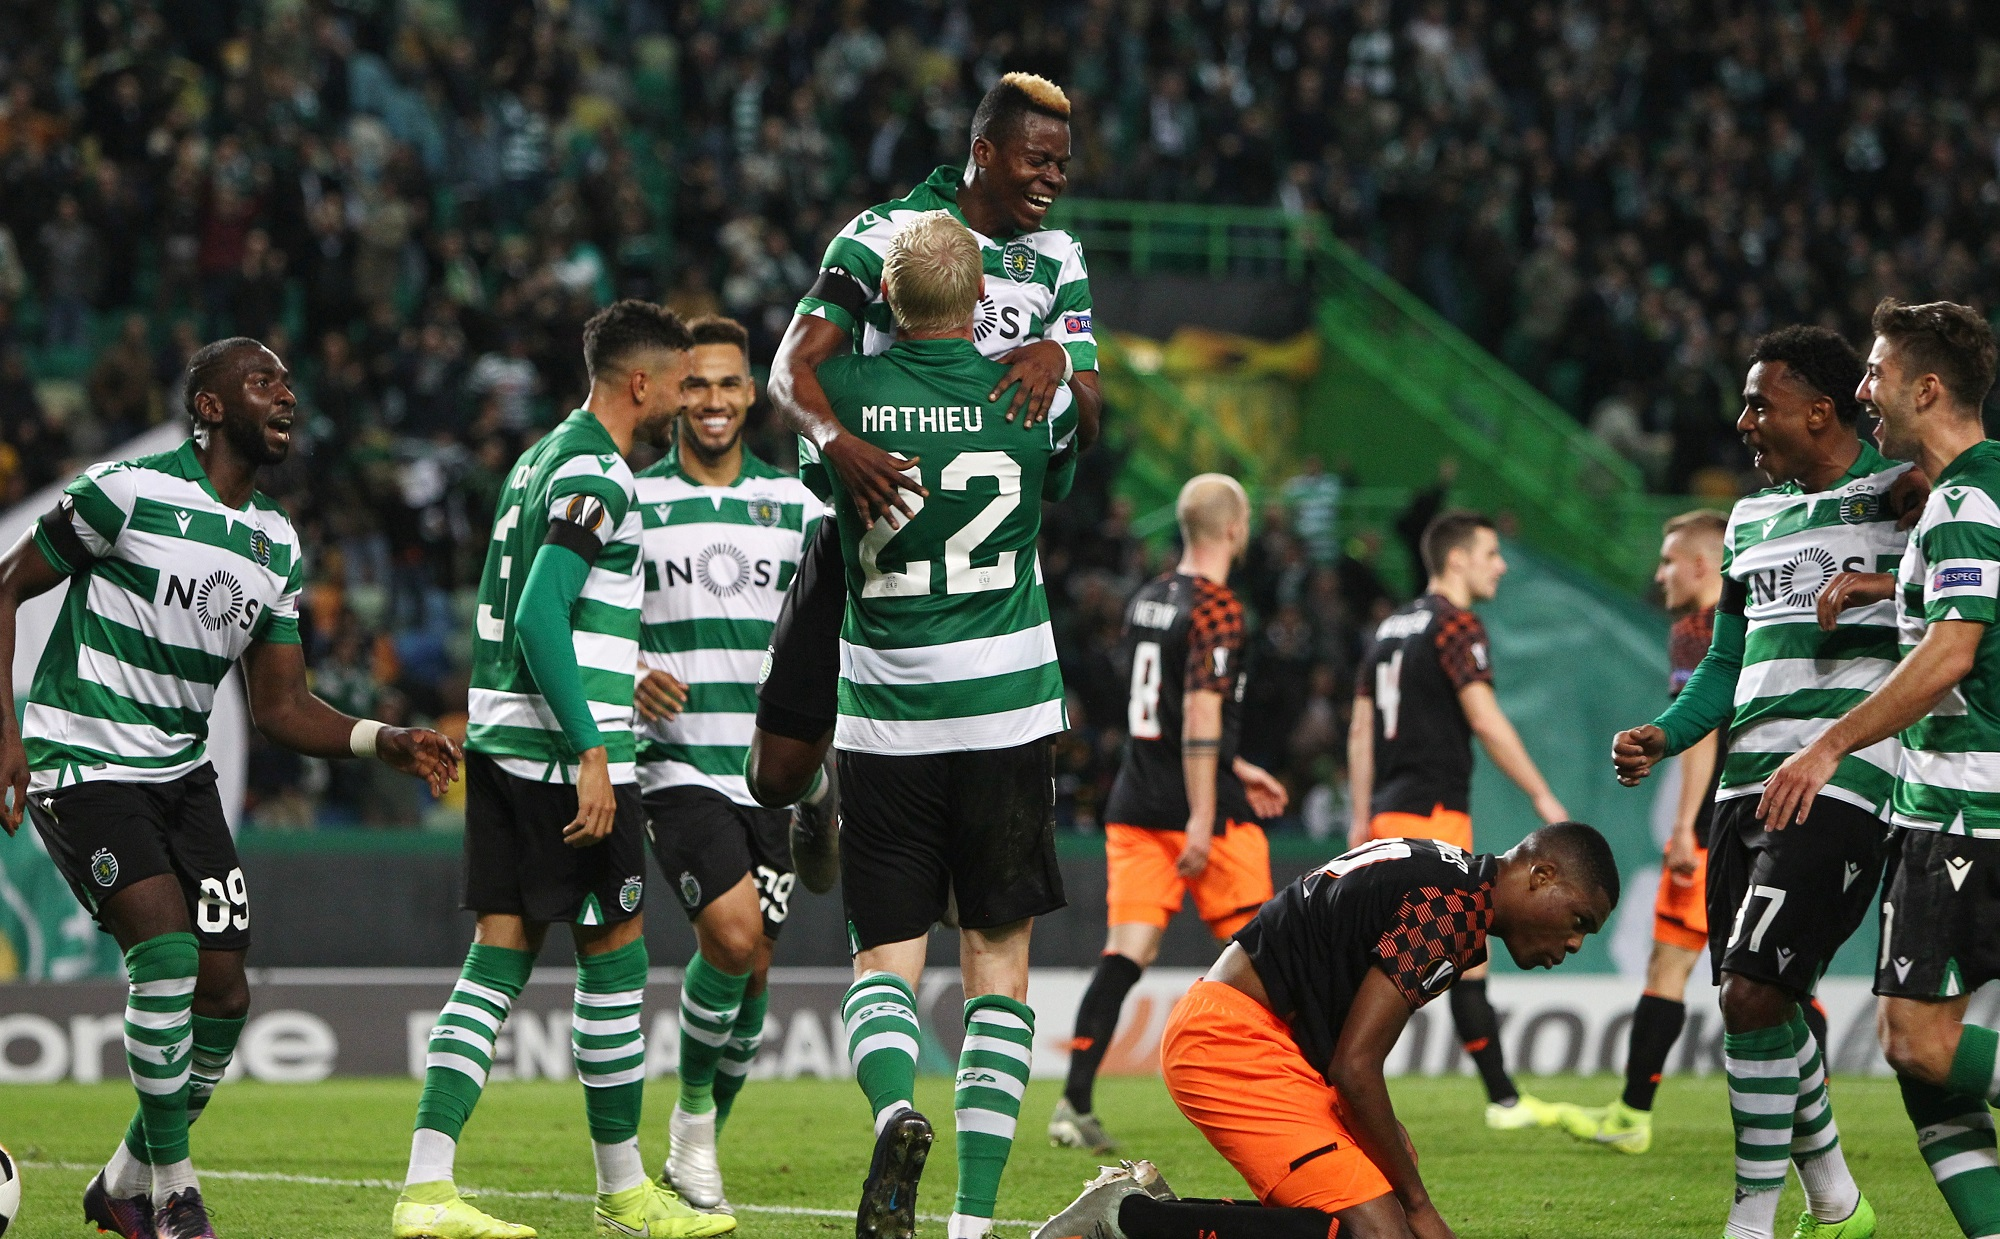 Soccer Football - Europa League - Group D - Sporting CP v PSV Eindhoven - Estadio Jose Alvalade, Lisbon, Portugal - November 28, 2019  Sporting's Jeremy Mathieu celebrates scoring their third goal with teammates       REUTERS/Pedro Nunes